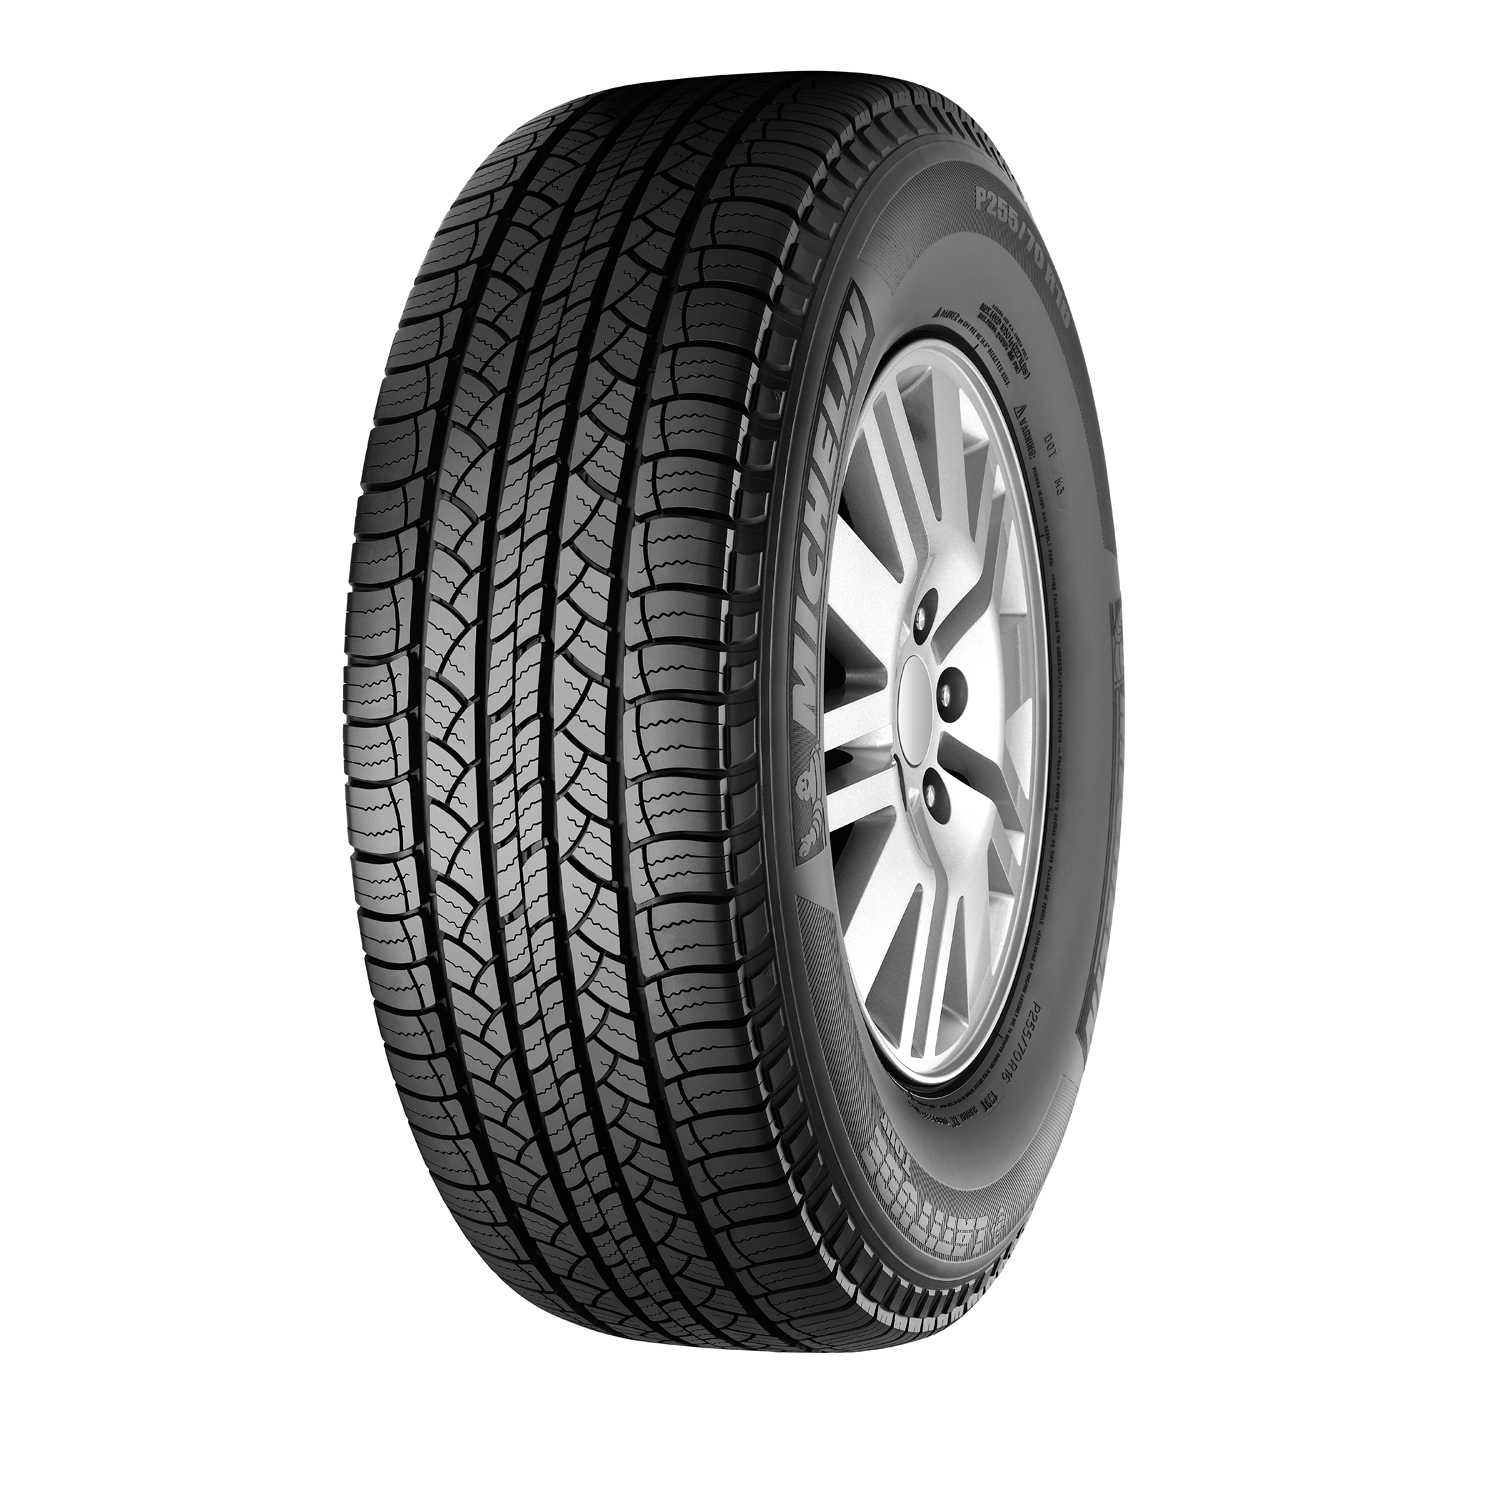 Michelin Latitude Tour - P265/70R17 113T BW - All Season Tire 265-70-17